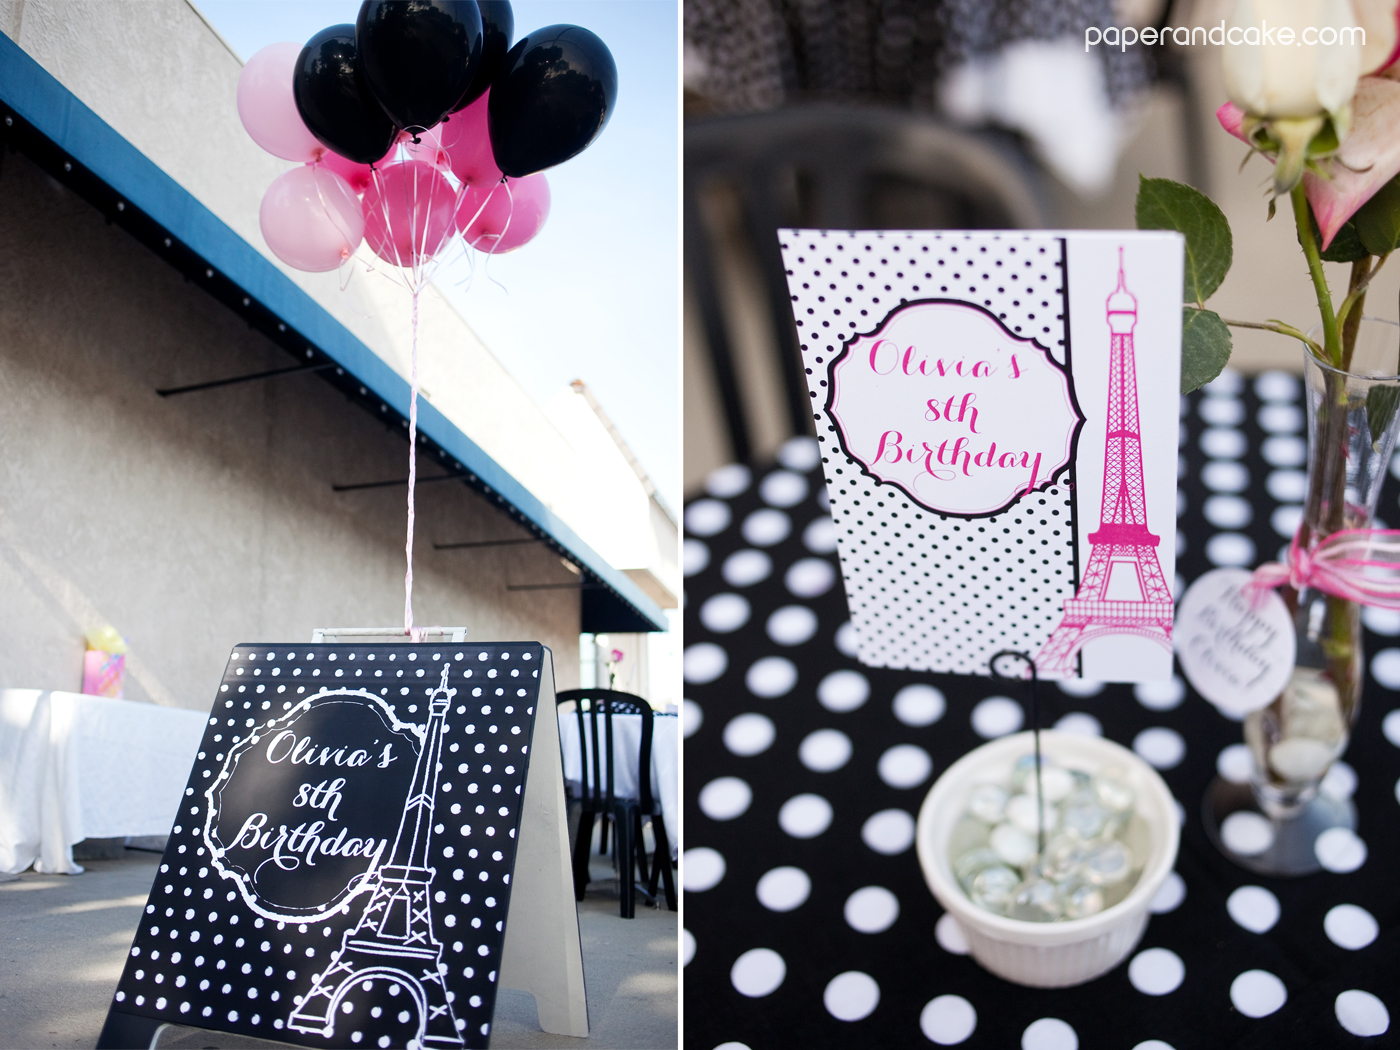 Paris Printable Birthday Party Paper And Cake Paper And Cake